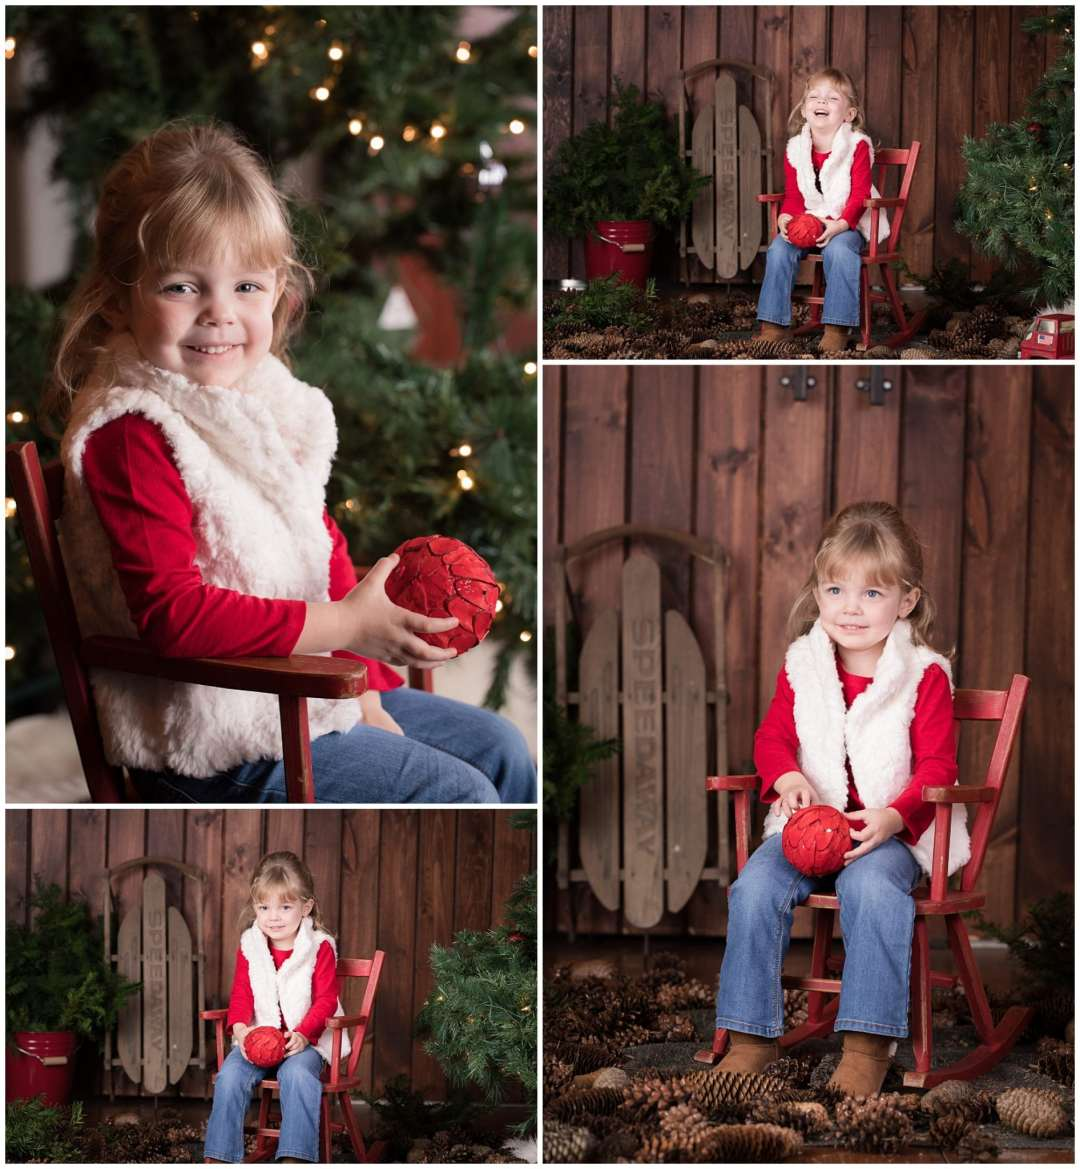 ChristmasMiniSessions_family-baby-kids_Berks-County-Reading-PA_0030.jpg